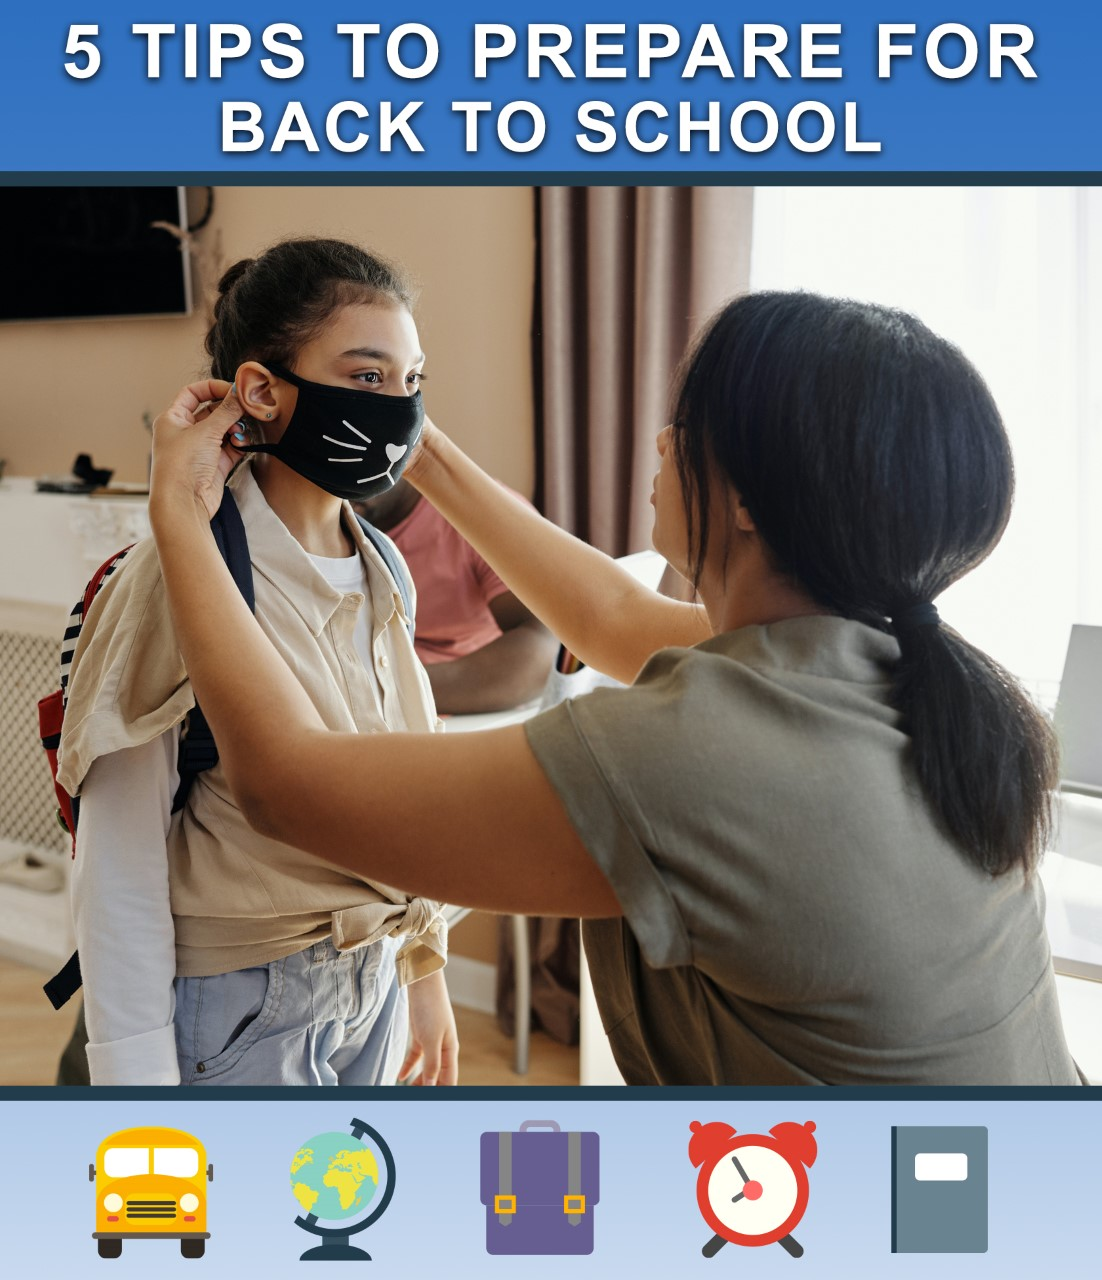 5 Tips to Prepare for Back to School During COVID-19